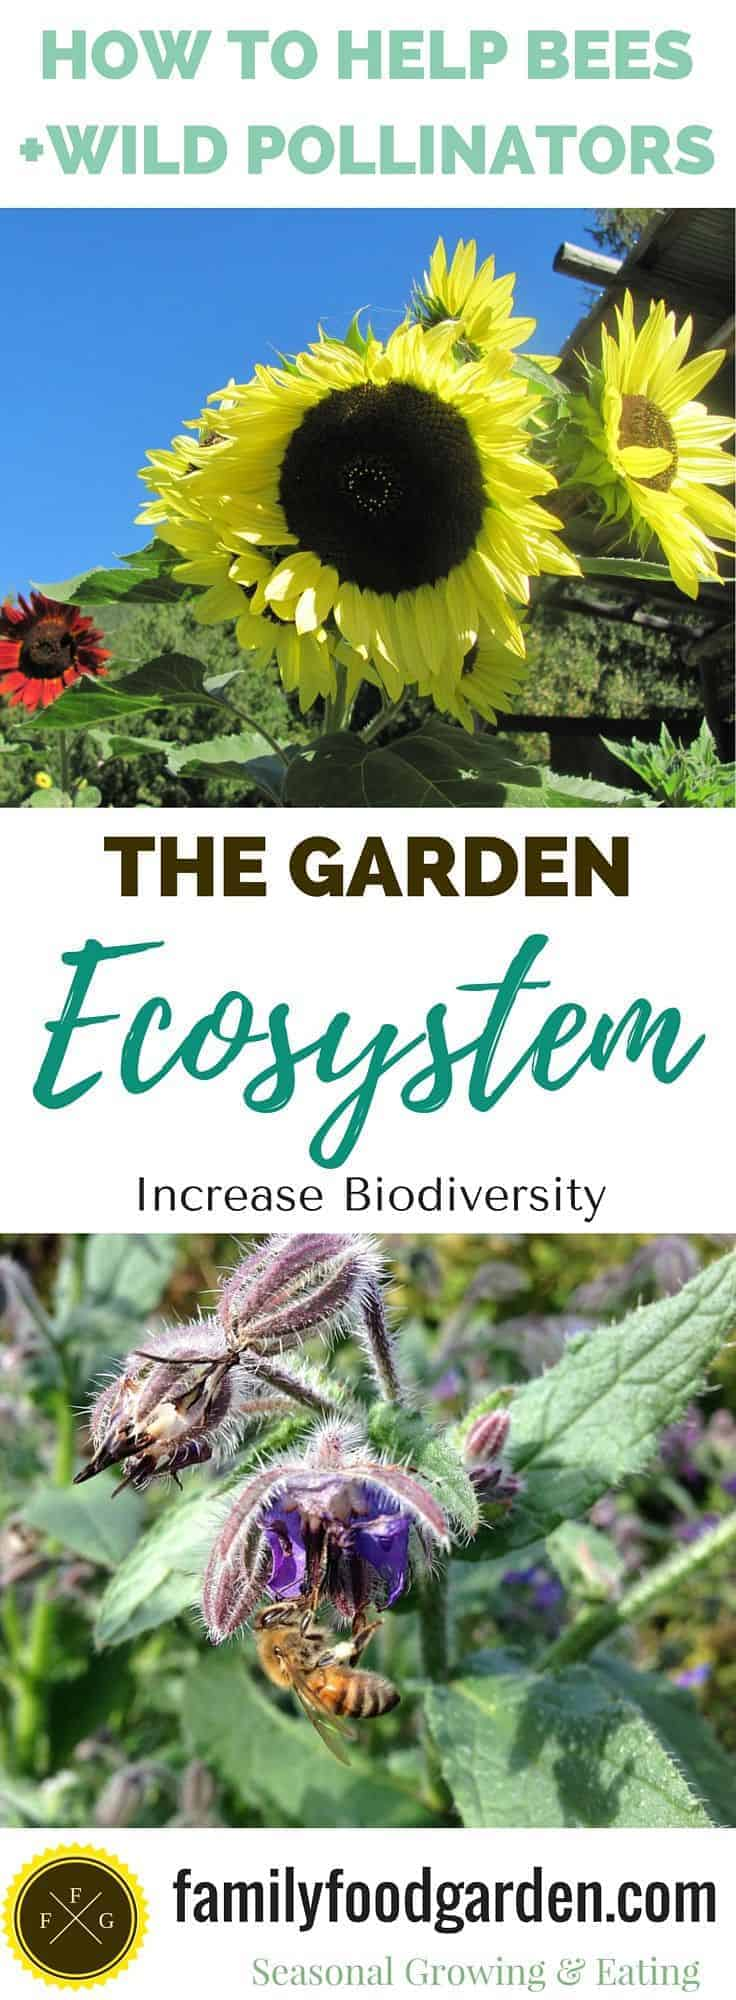 The importance of creating biodiversity for better gardening